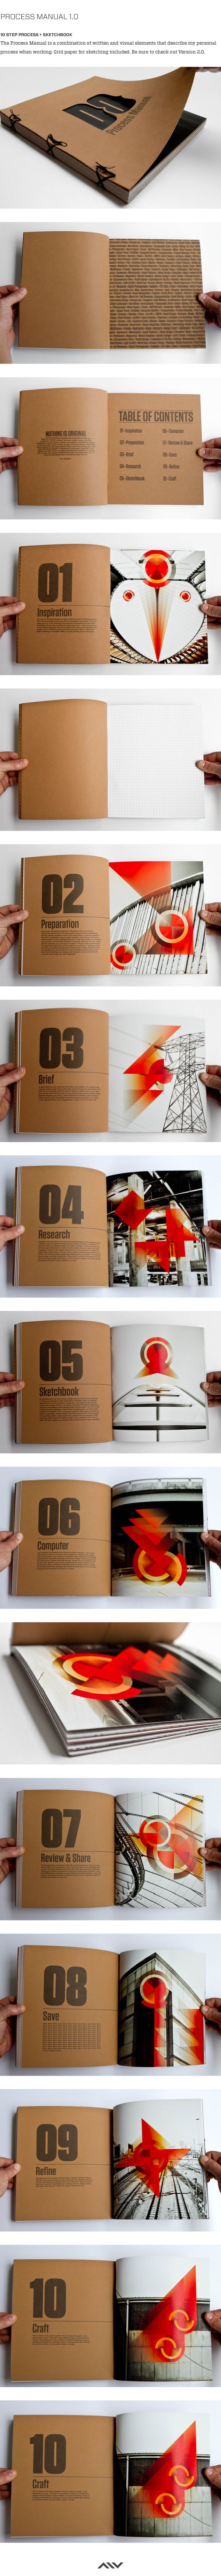 Process Manual Volume 1.0 by Dan Ogren, via Behance